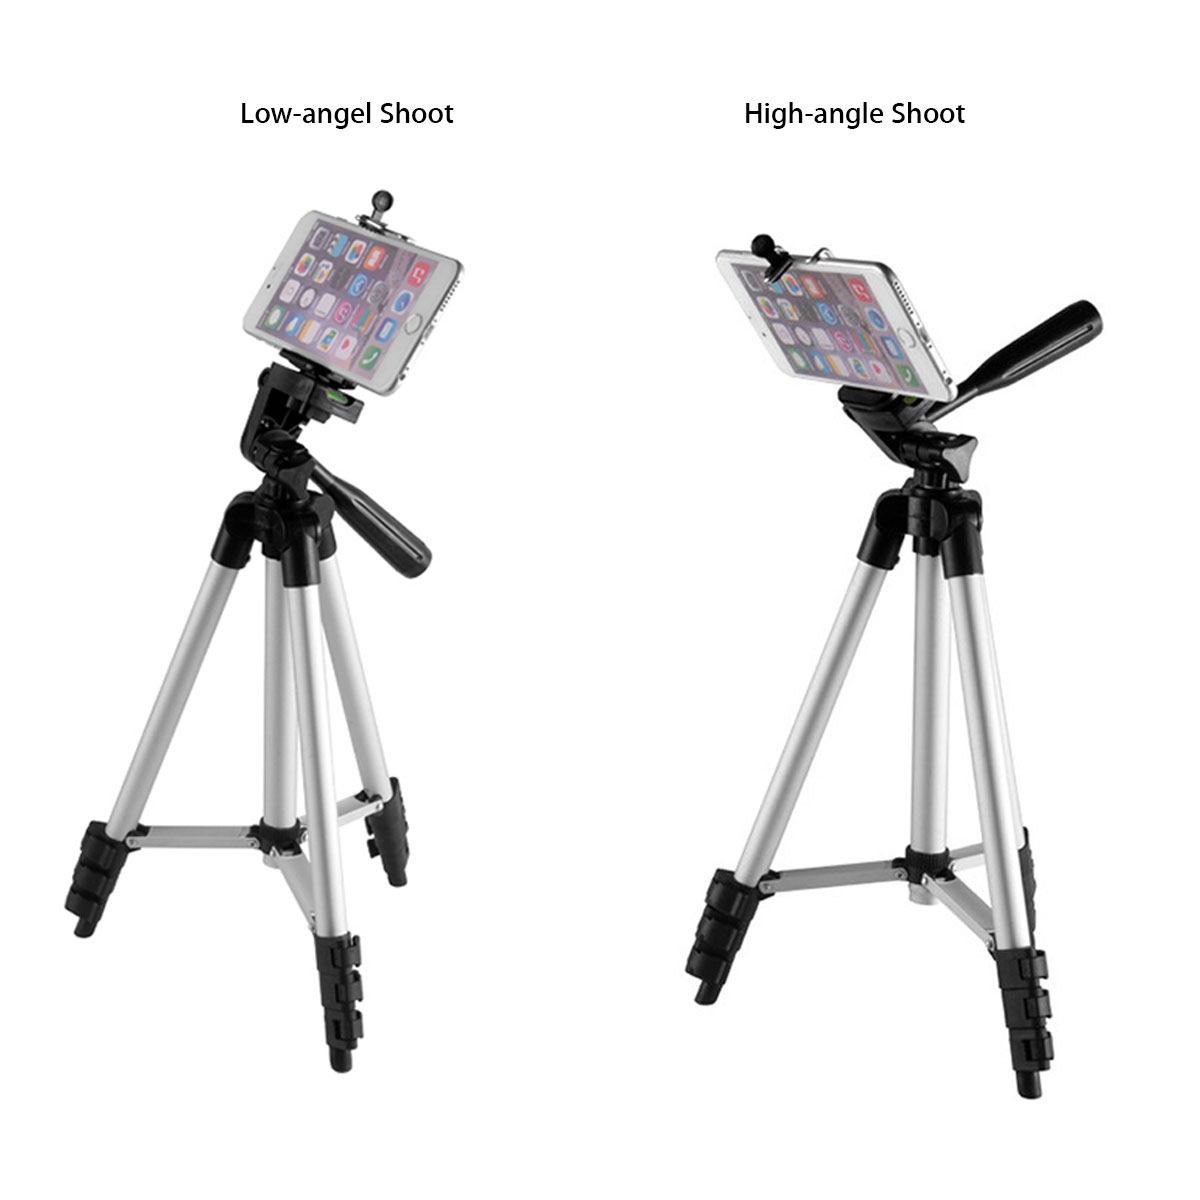 Extendable 36-100cm Universal Adjustable Tripod Stand Mount Holder Clip Camera Phone Holder Bracket For Cell Phone Camera 4